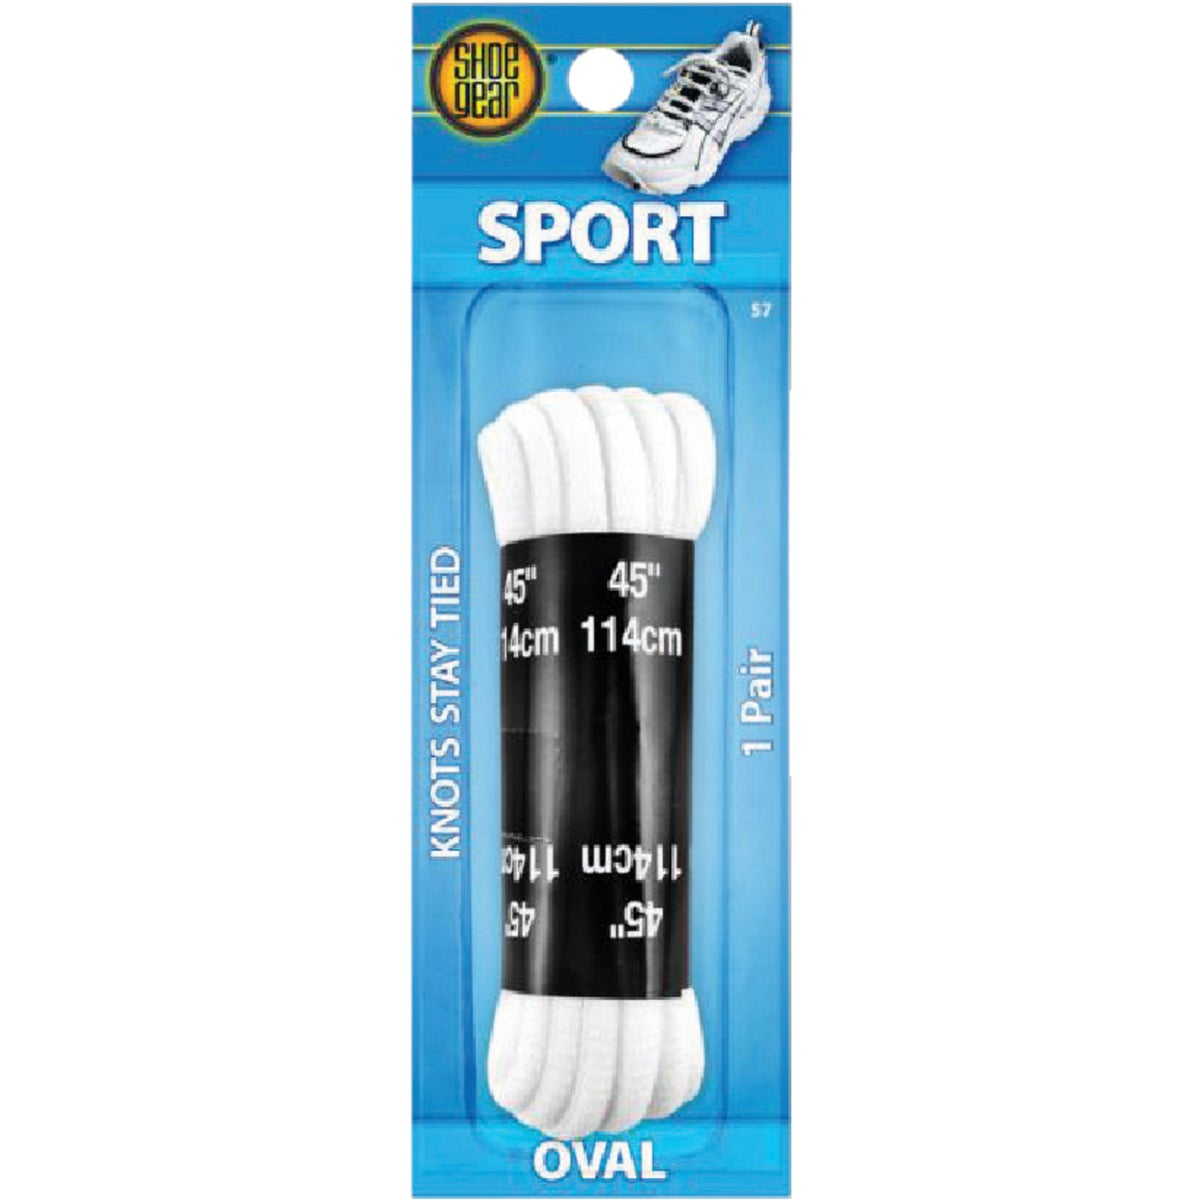 "45"" WHITE ATHLETIC LACES - 63394 by Sc Johnson"